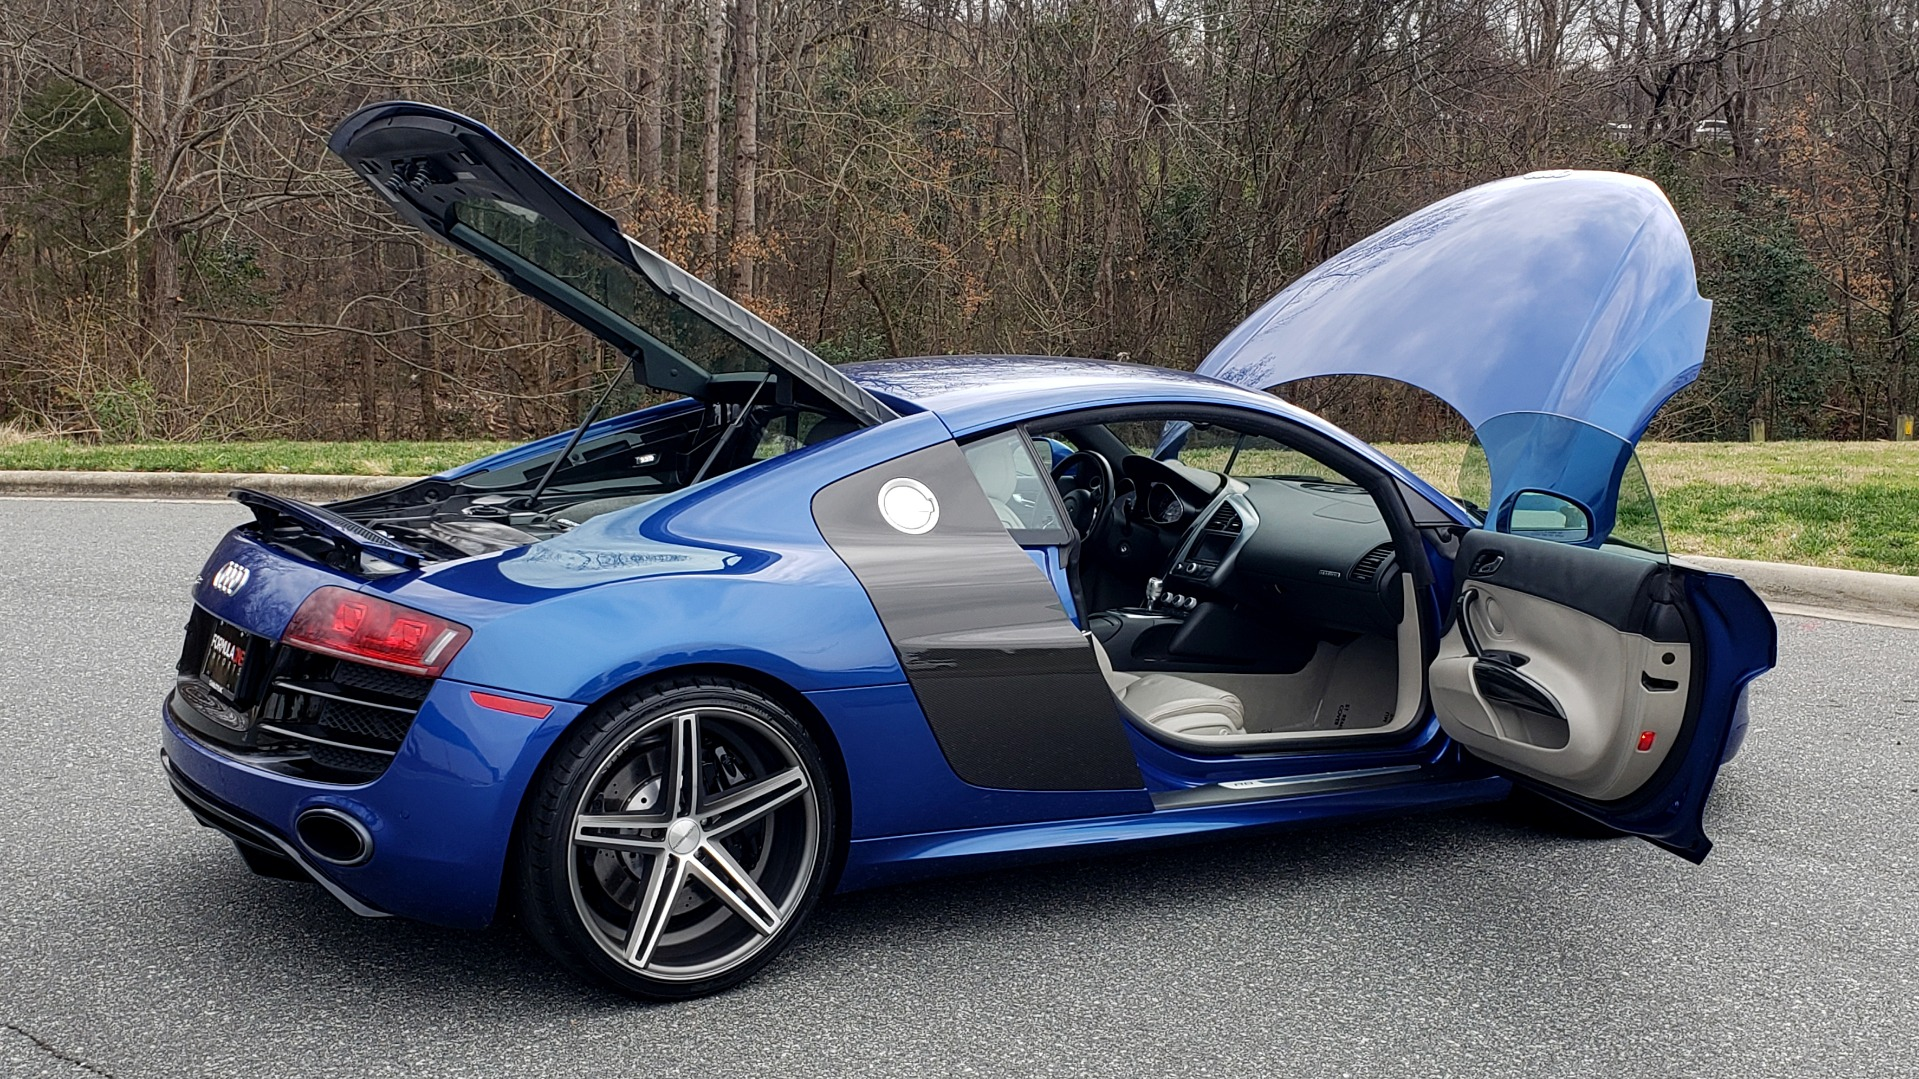 Used 2010 Audi R8 5.2L V10 / AWD / COUPE / NAV / 6-SPD AUTO / CUSTOM WHEELS for sale Sold at Formula Imports in Charlotte NC 28227 13